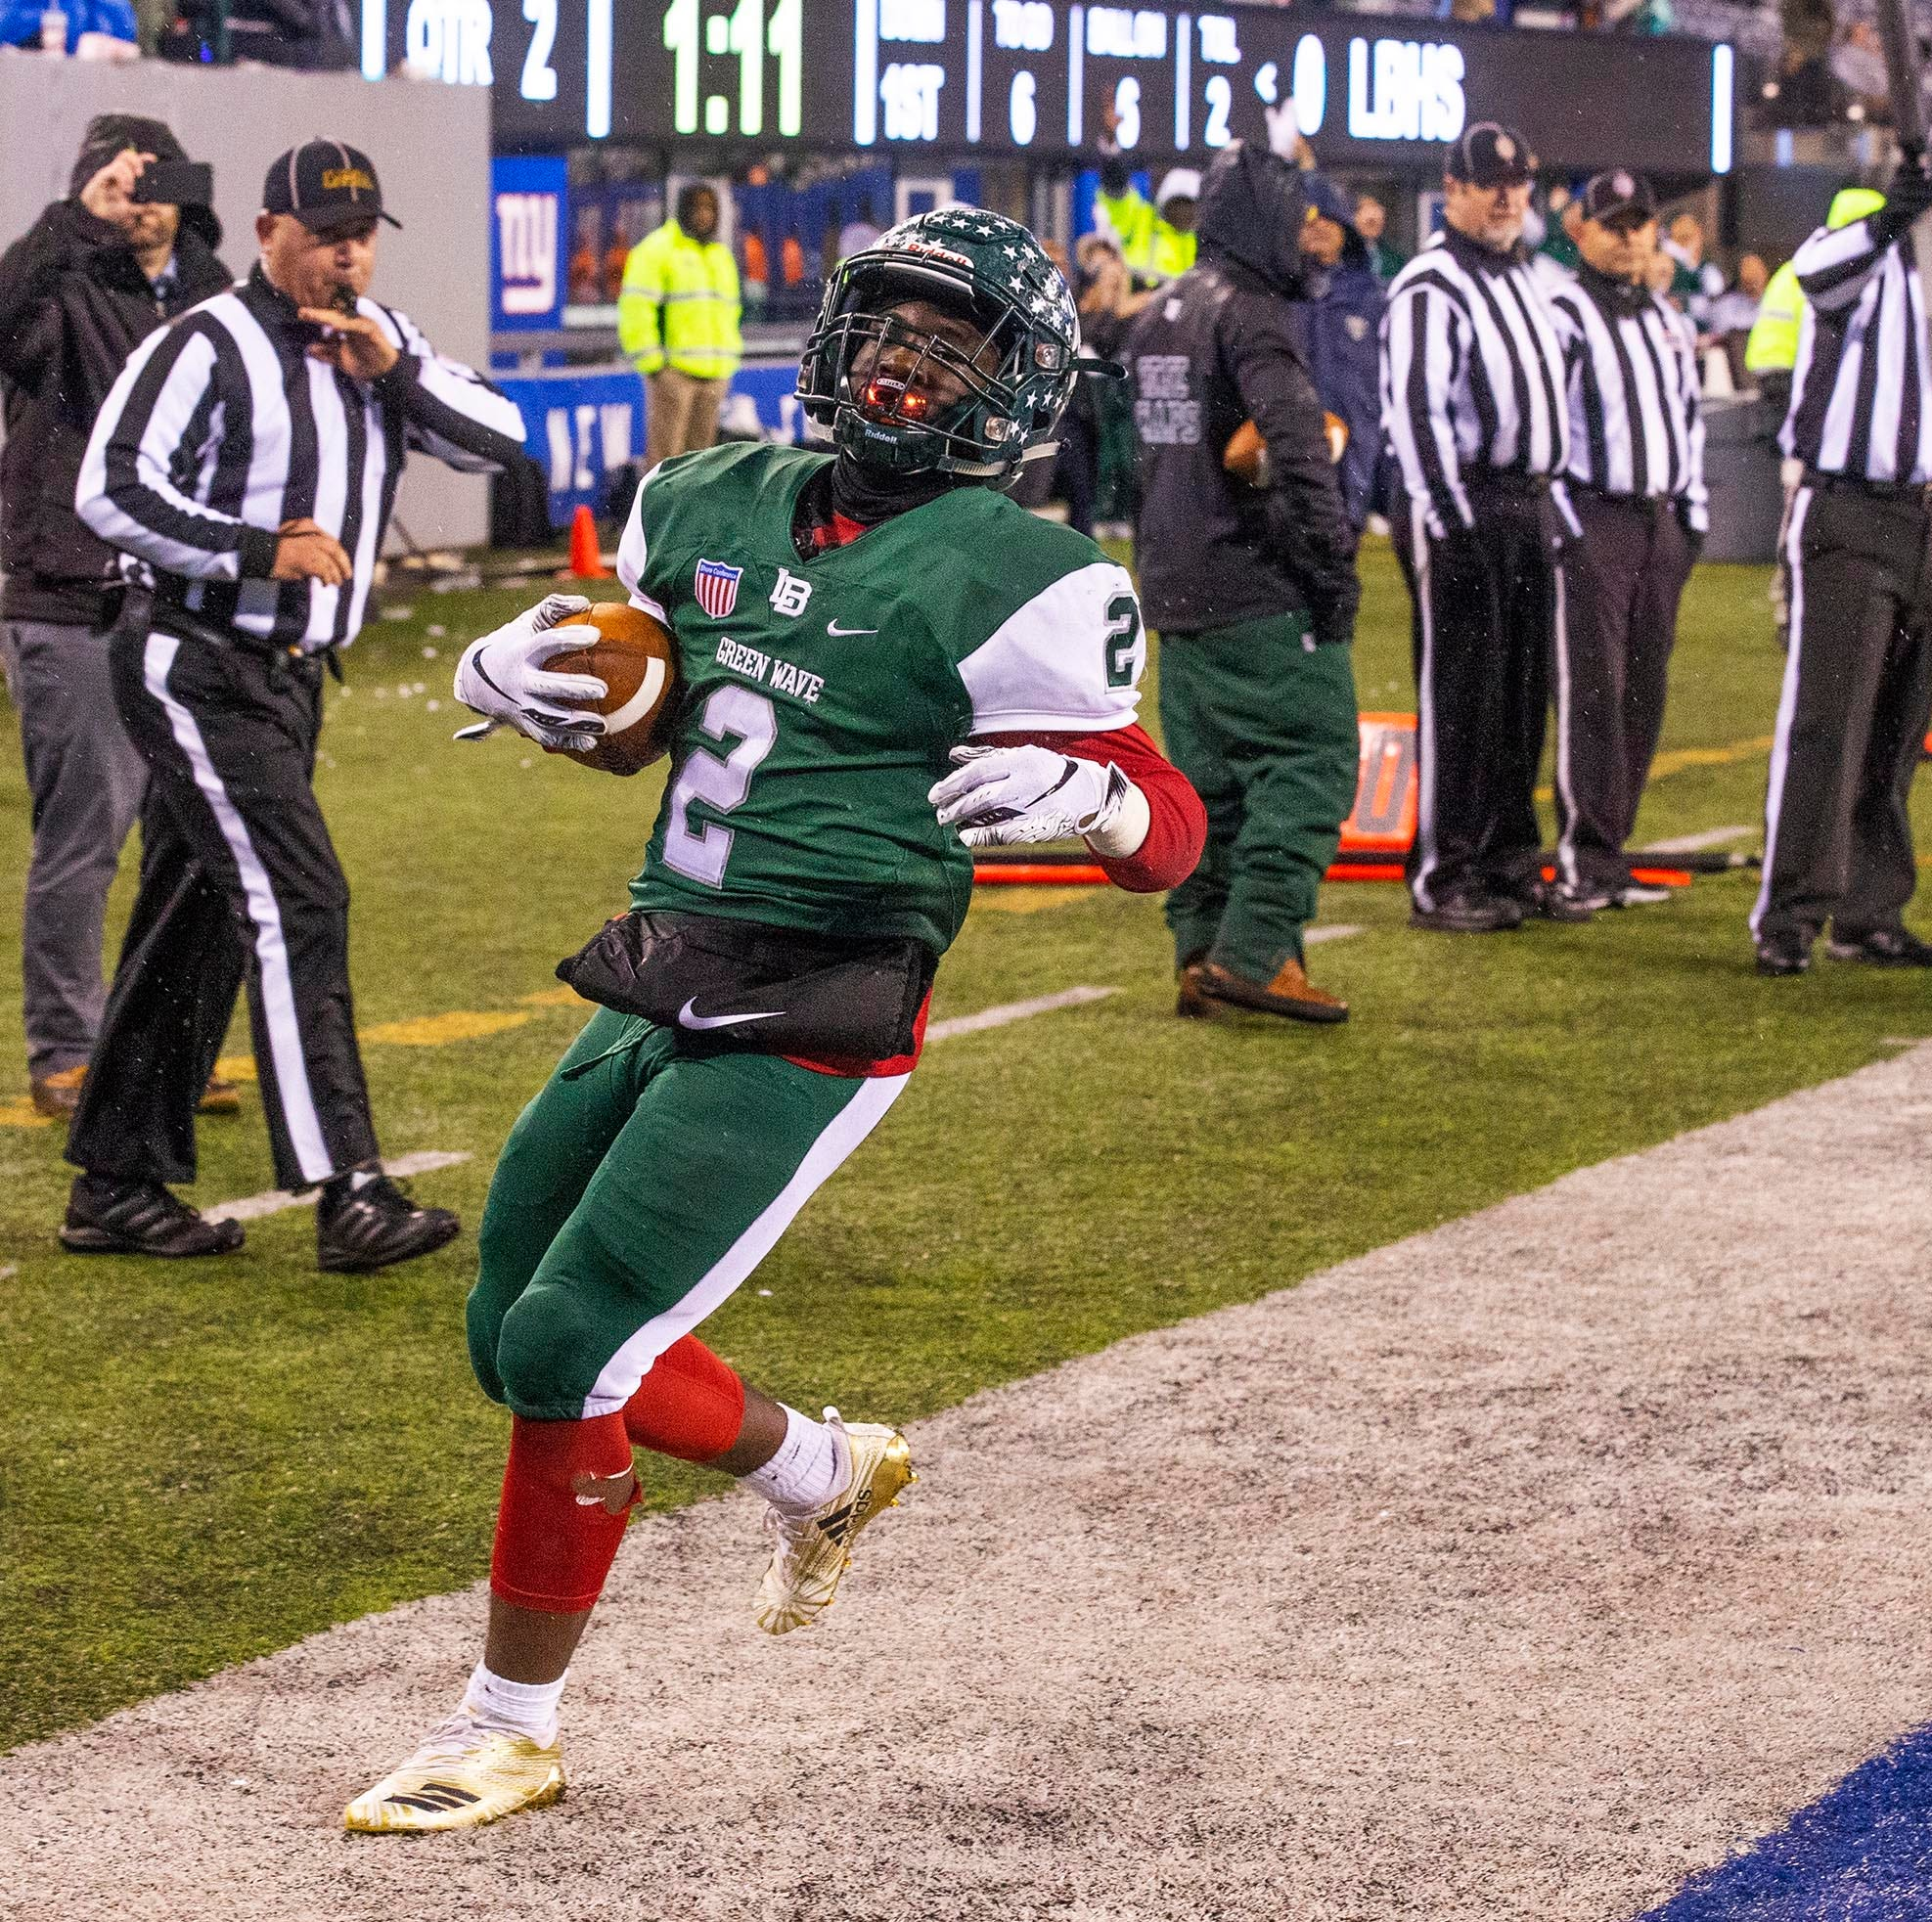 NJ football playoffs:  Long Branch storms back to win bowl game